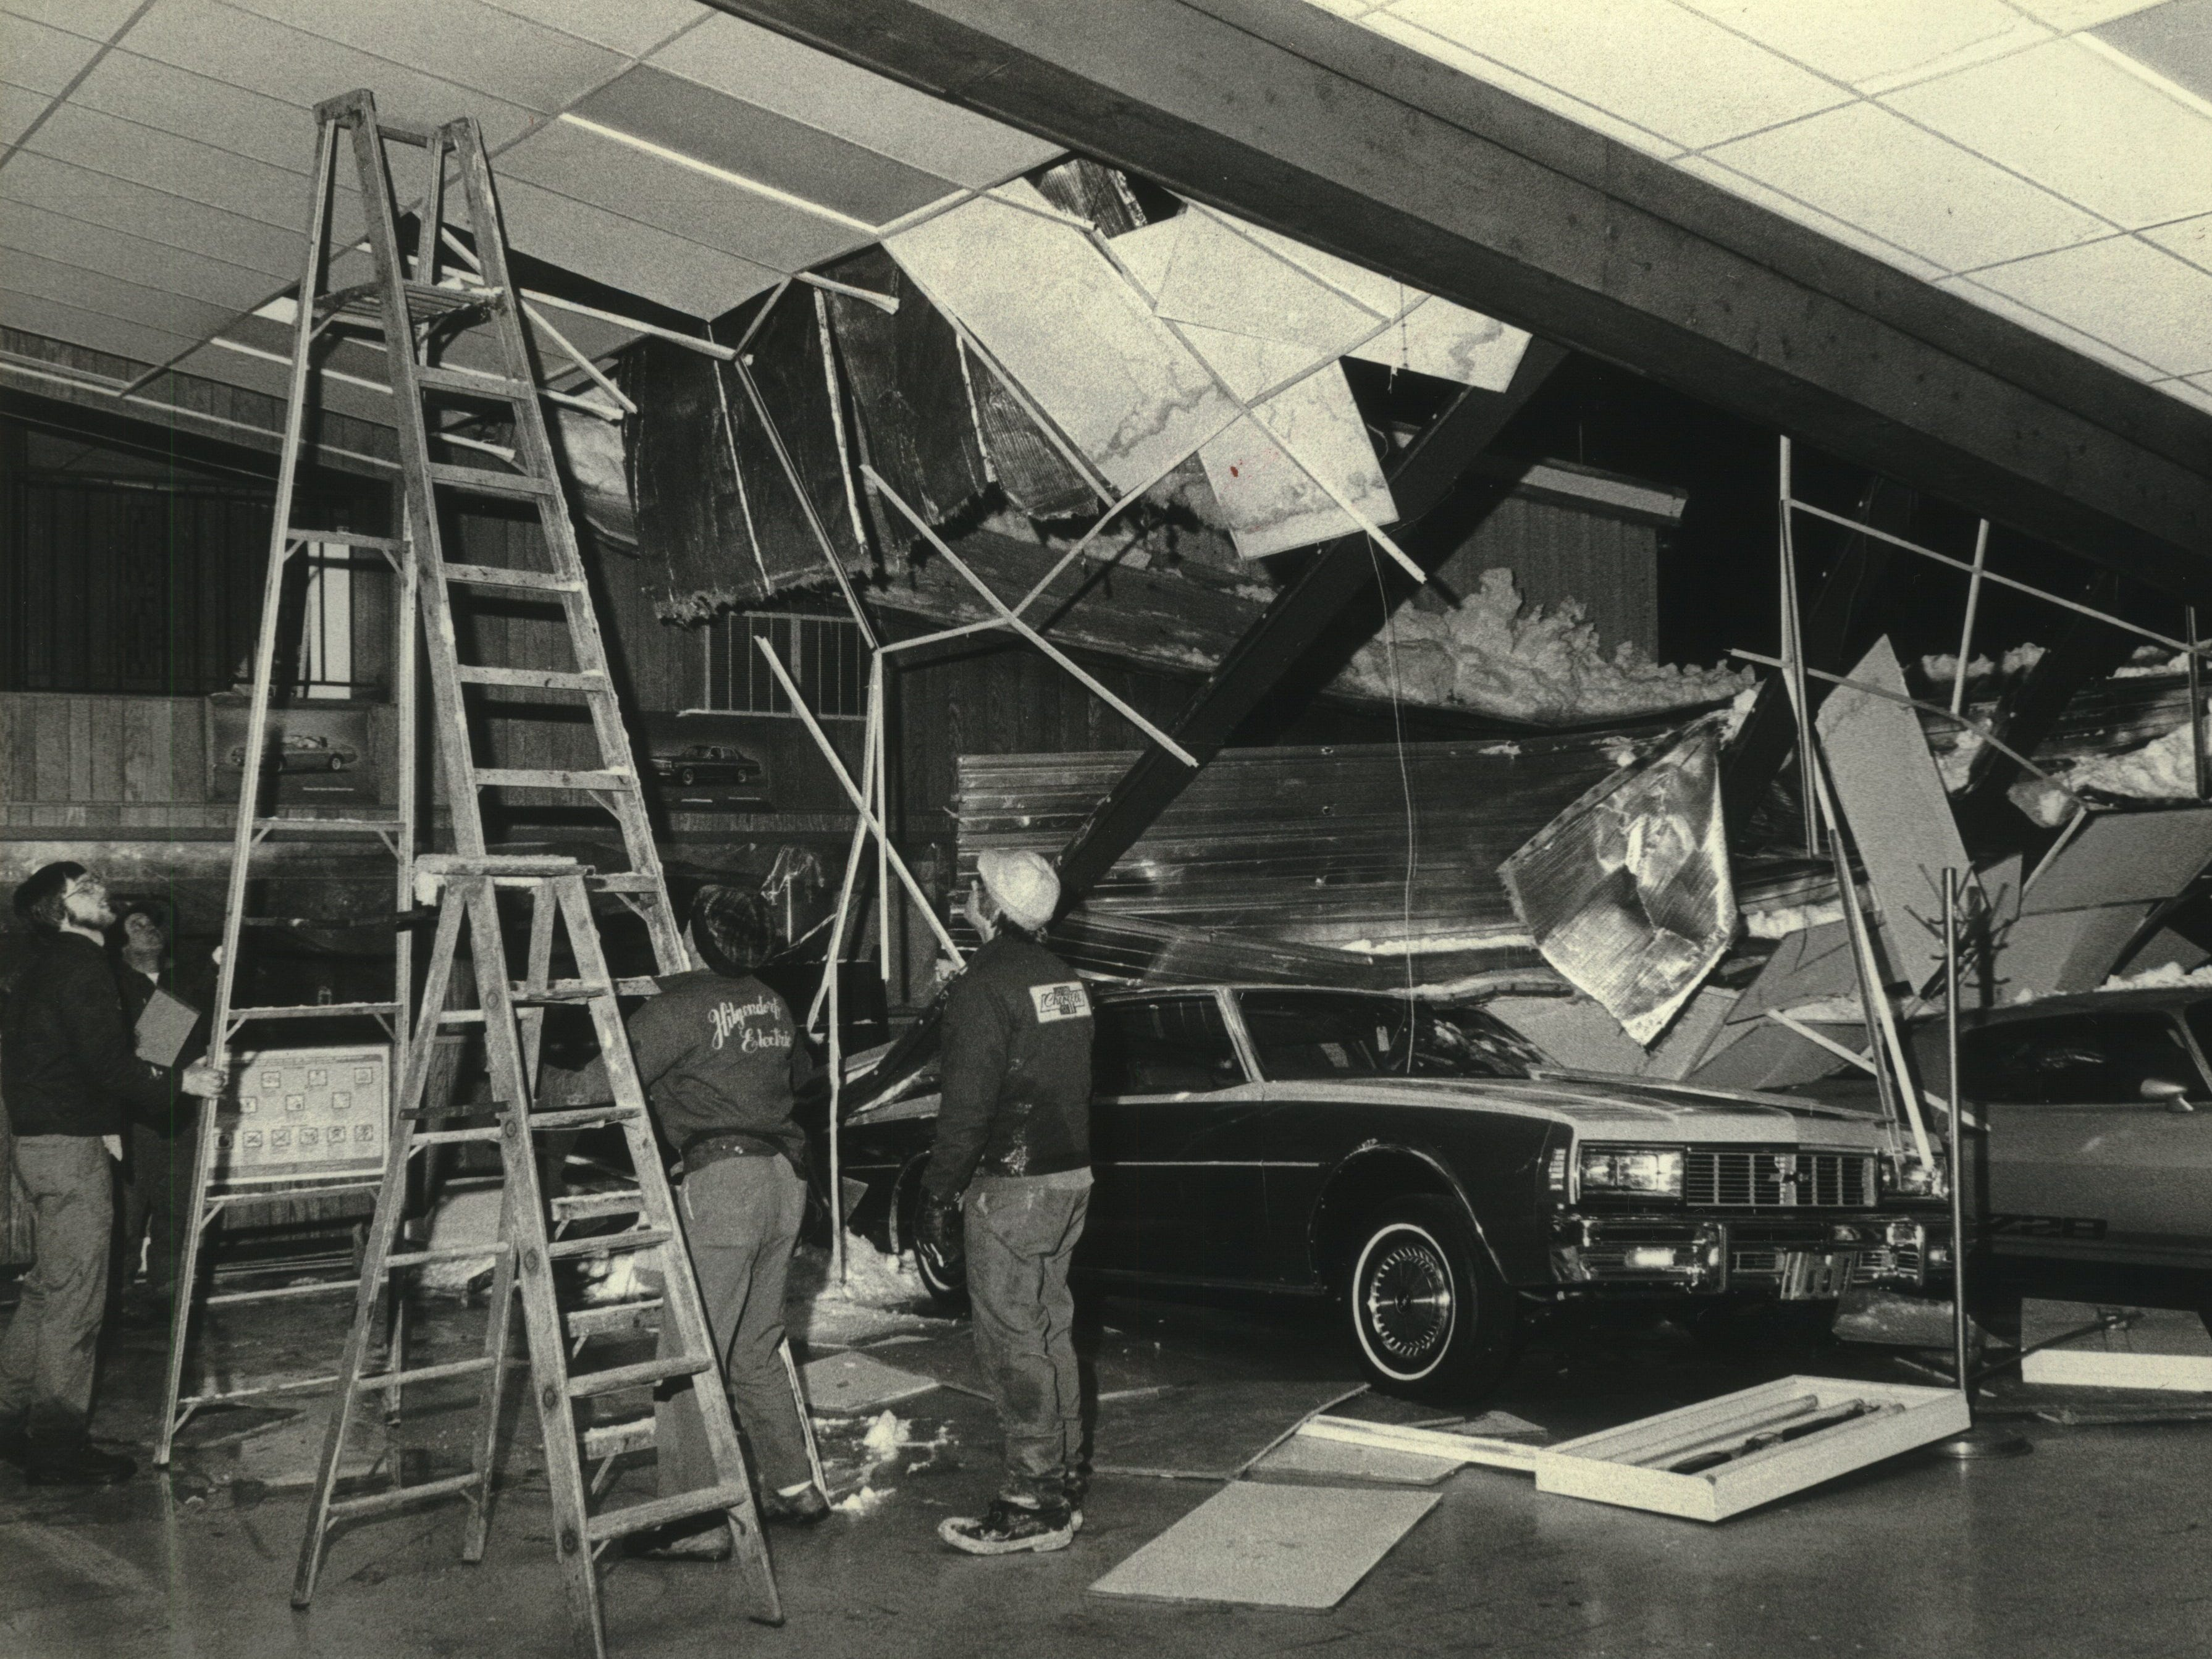 The weight of back-to-back blizzards was too much for the roof of Martz Chevrolet in Menomonee Falls. The roof of the dealership caved in on Jan. 16, 1979. This photo was published in the Jan. 17, 1979, Milwaukee Sentinel.